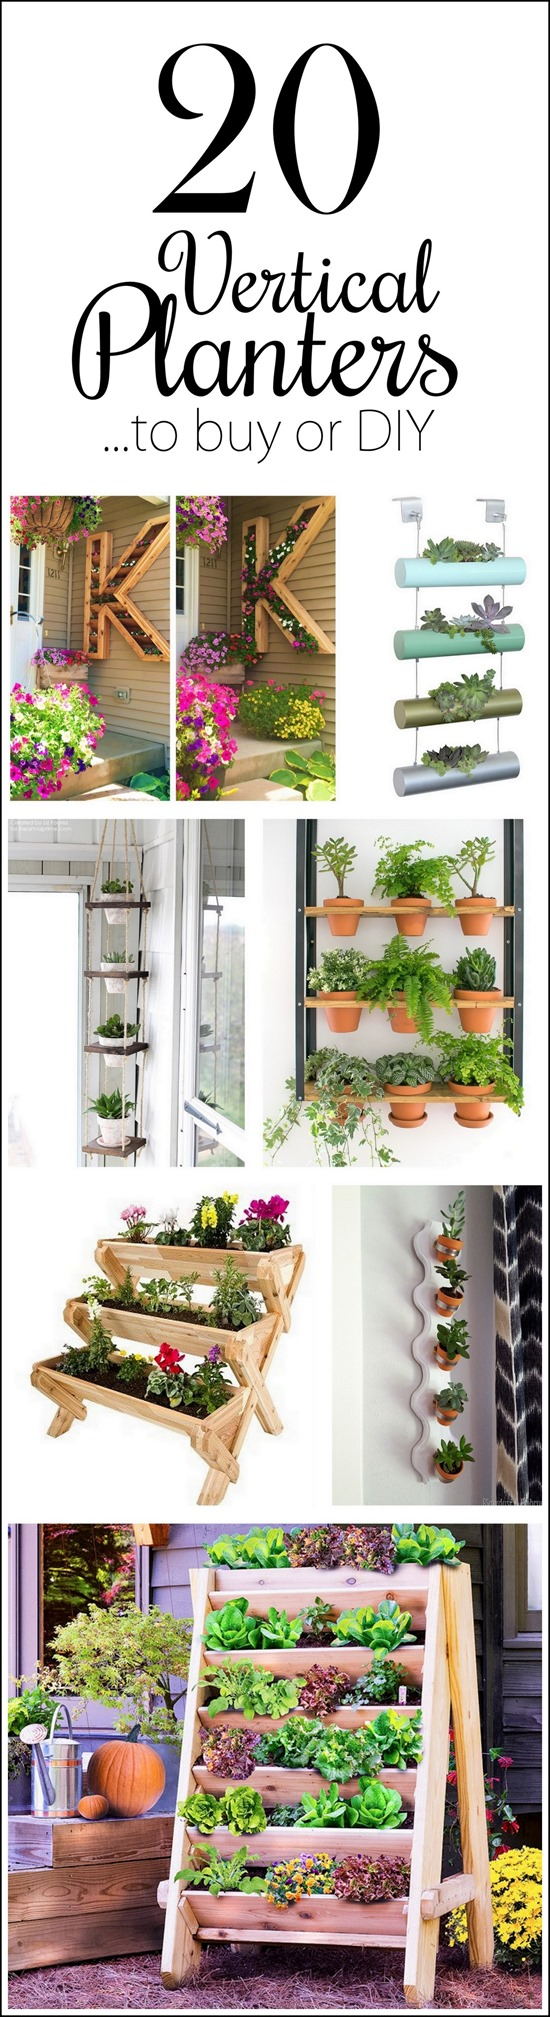 Lots of inspiring vertical planters or 'living walls' to buy or DIY! {Reality Daydream}